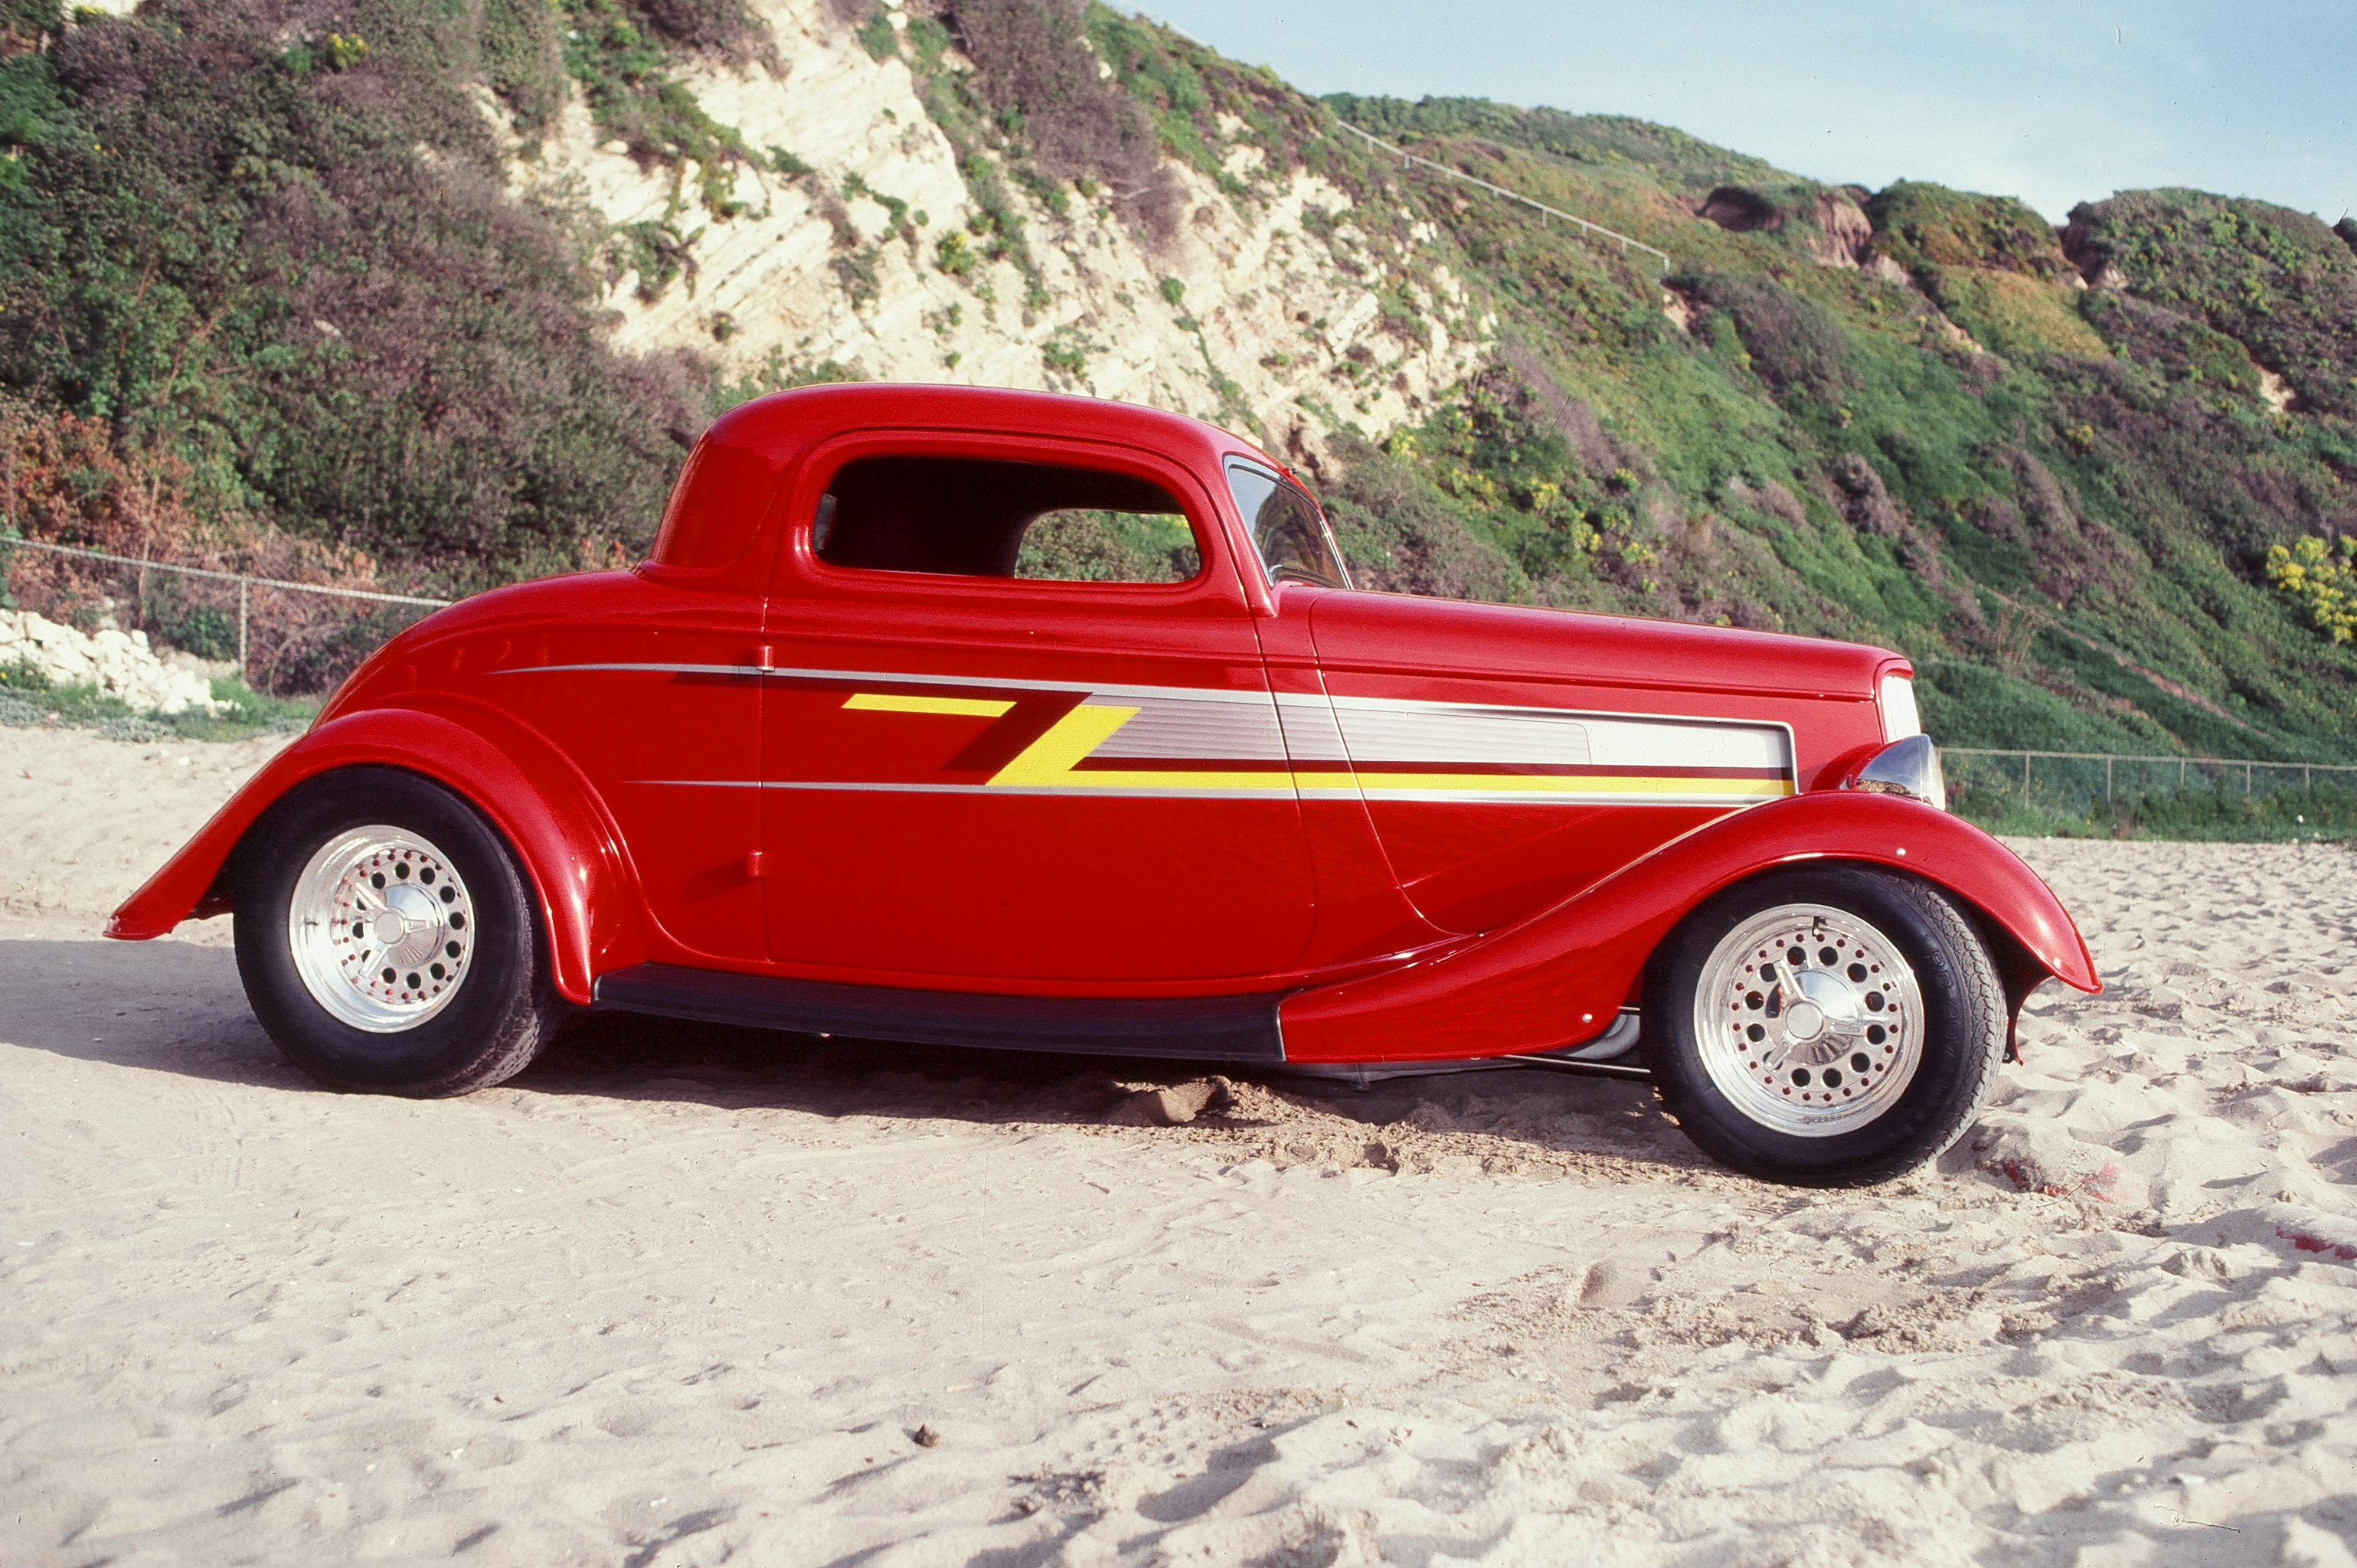 Billy gibbons zz top eliminator 1932 ford coupe movie cars pinterest zz top billy gibbons and coupe